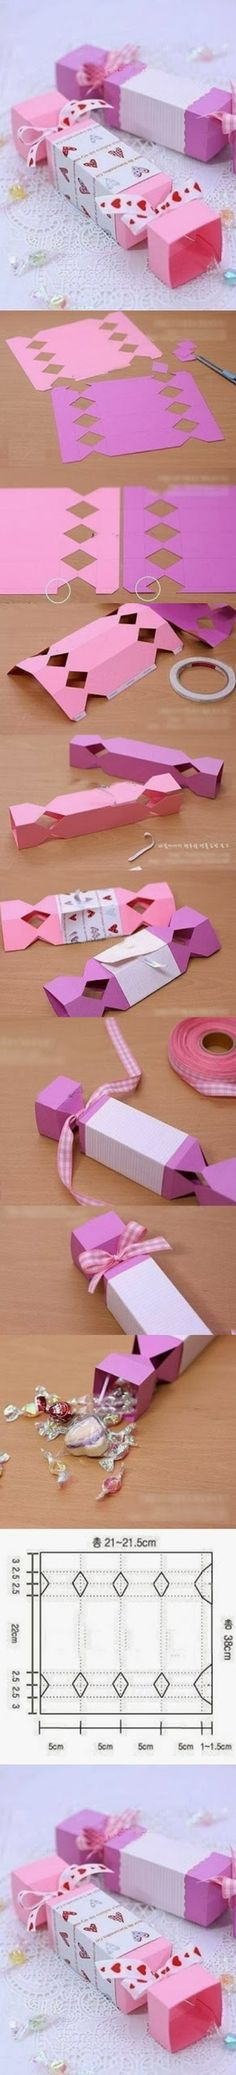 7 DIY Paper Crafts for Valentine's Day